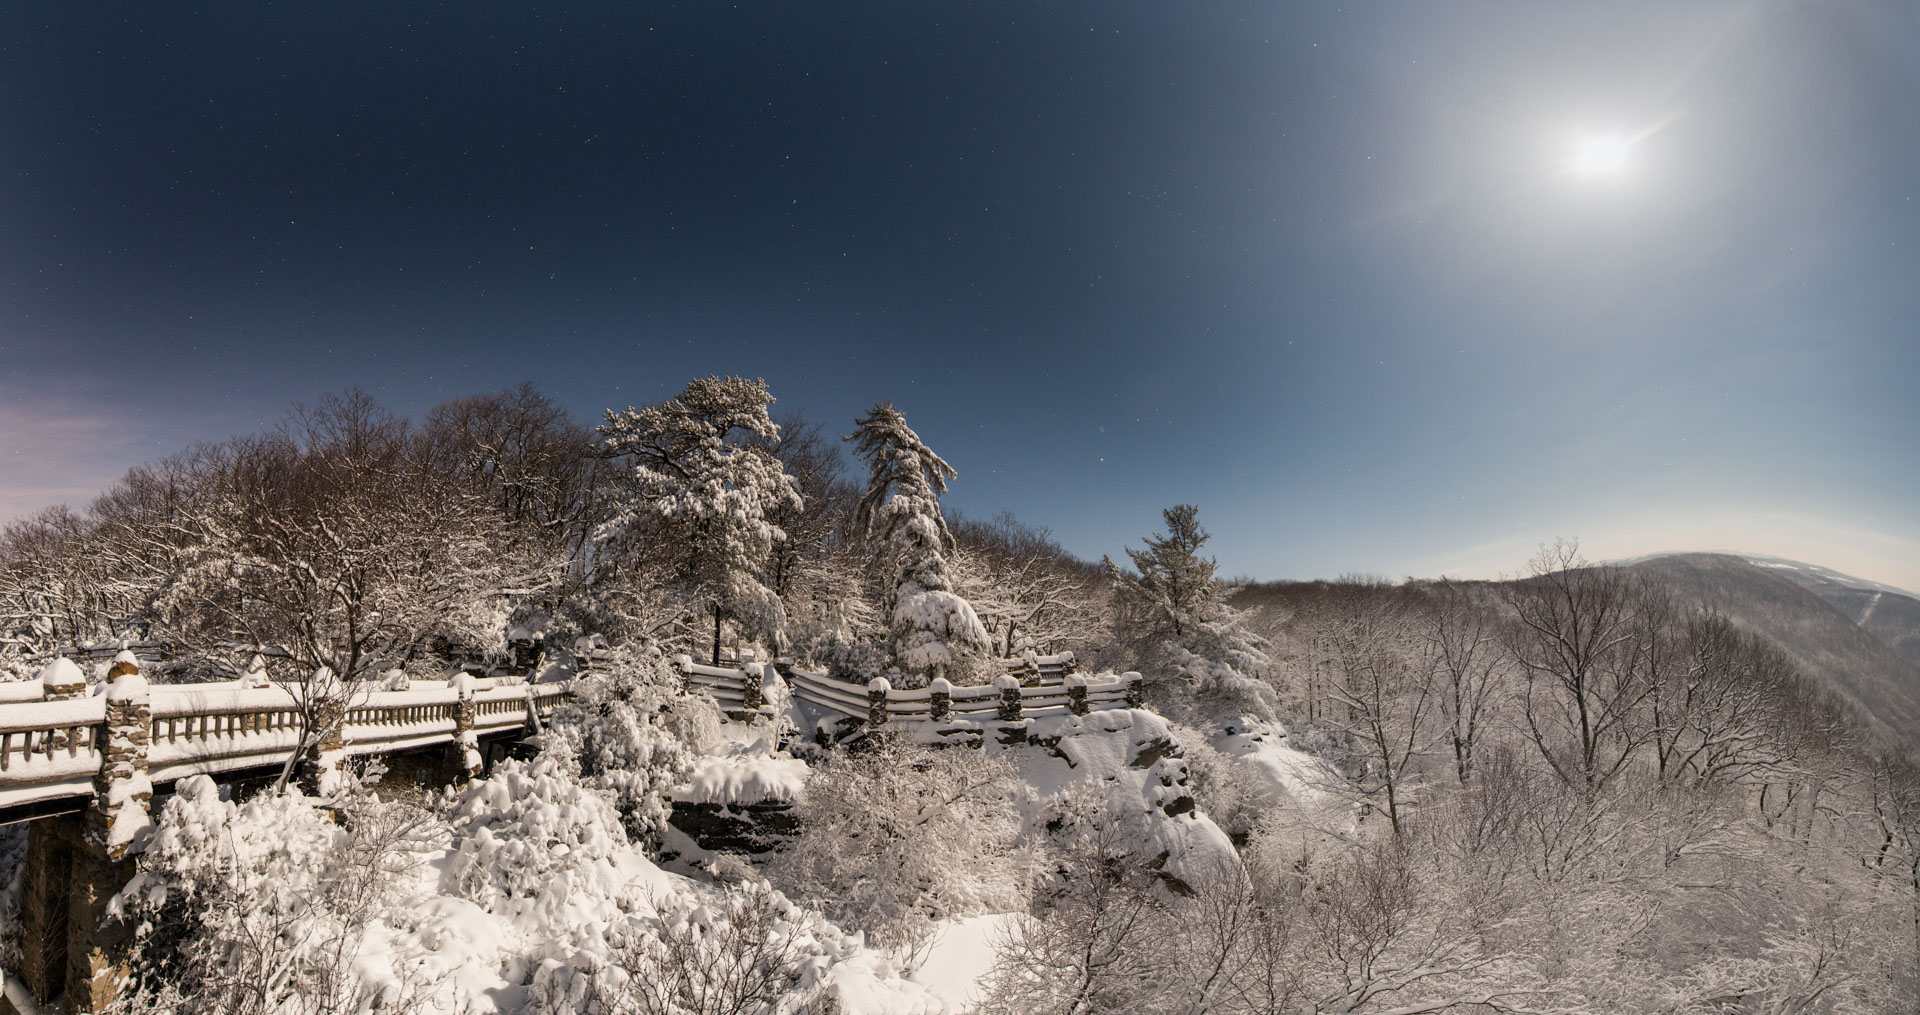 Adventure Photography, Coopers Rocks, Cross Country Skiing, Favorite things, Places, Seasons, Snow, Snow Day, West Virginia, Winter, by Gabe DeWitt, panorama